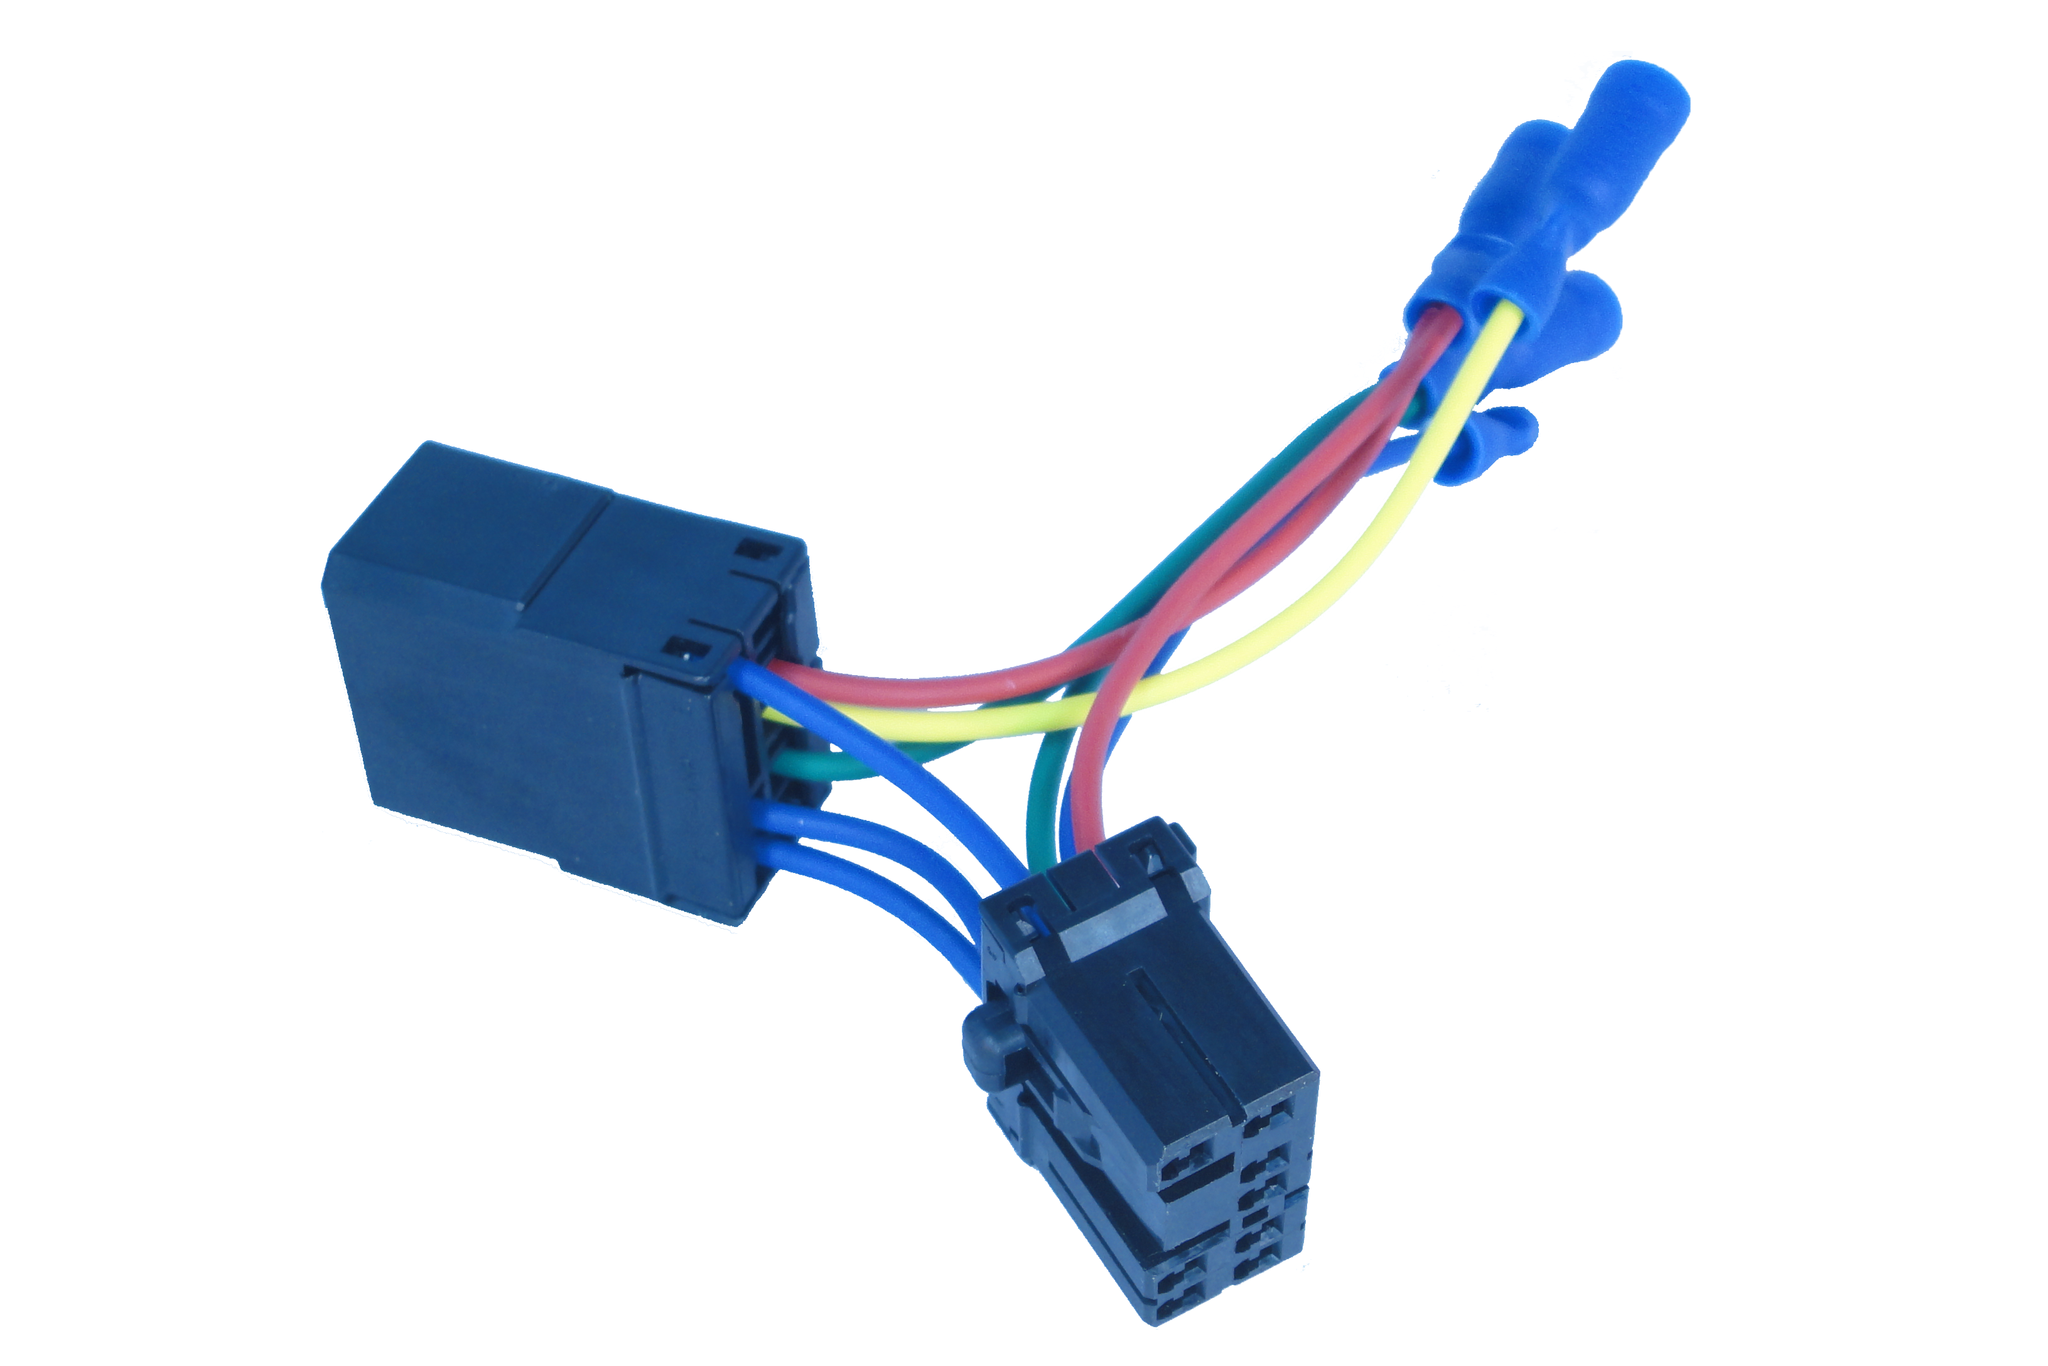 Gearbrake Smart Brake Light Module Wire Harness Connection Plug And Play Wiring